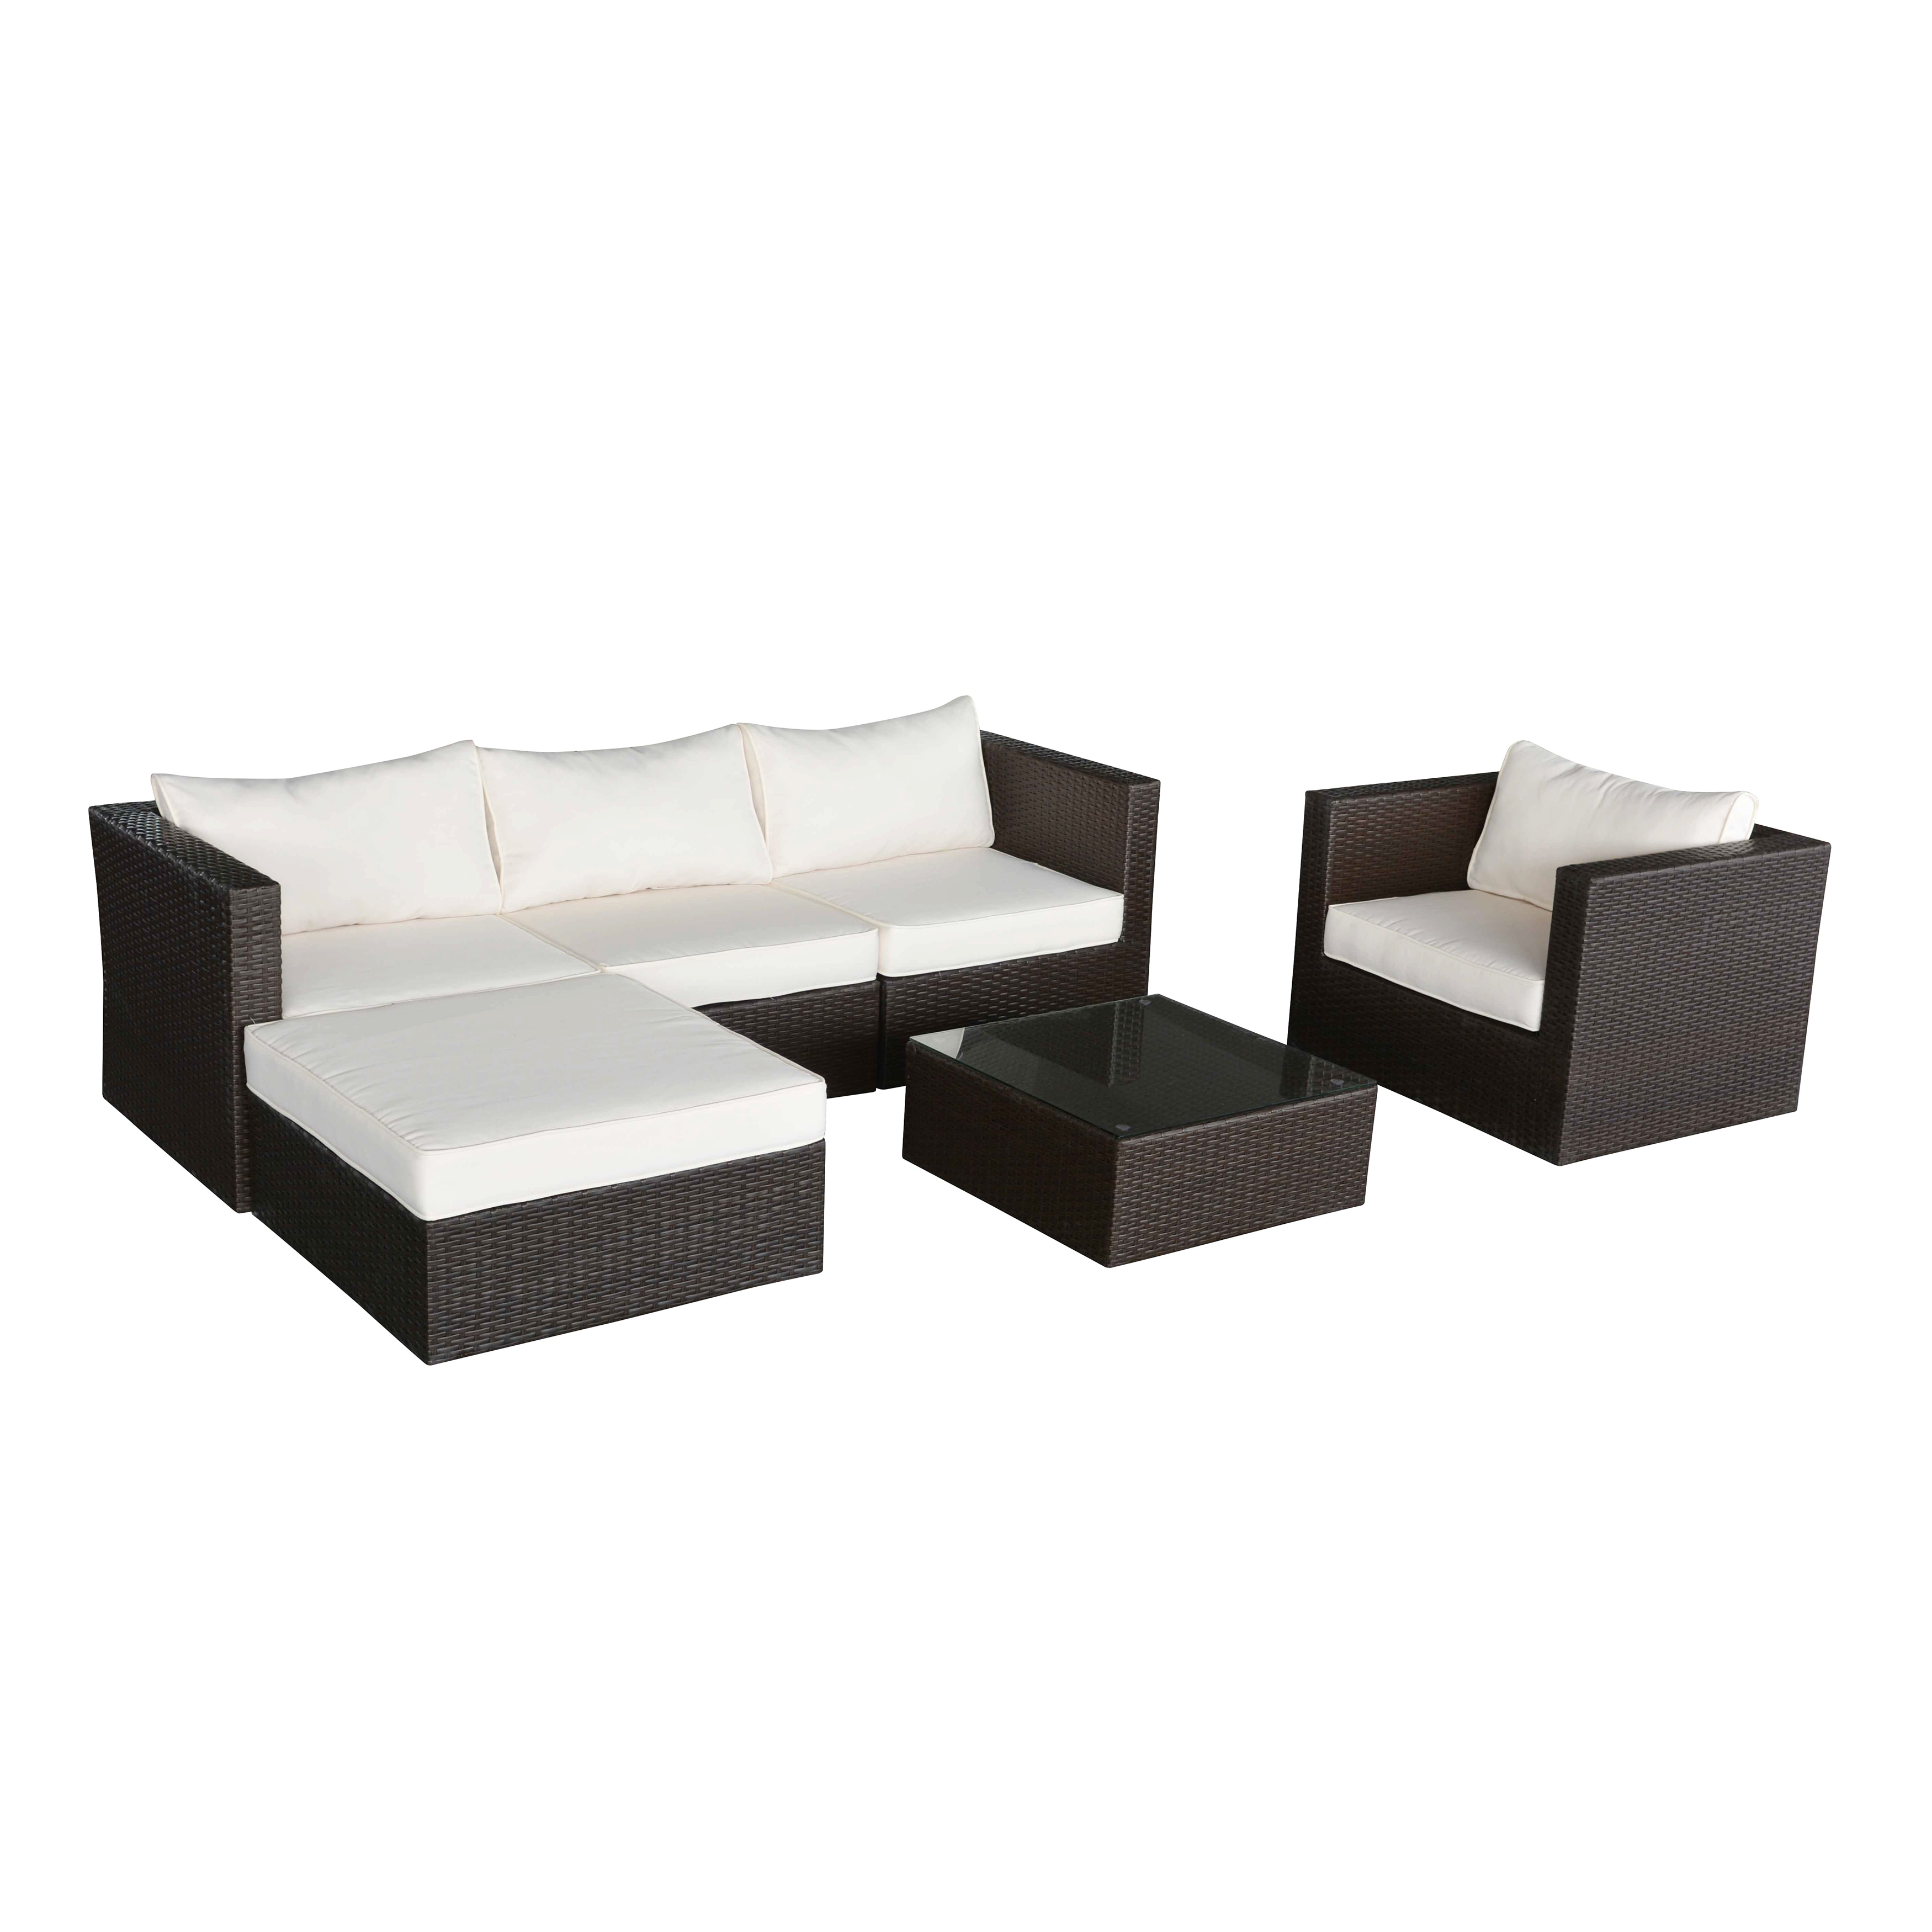 Merveilleux Havenside Home Caladesi Dark Brown Wicker Outdoor Couch And Ottoman Set